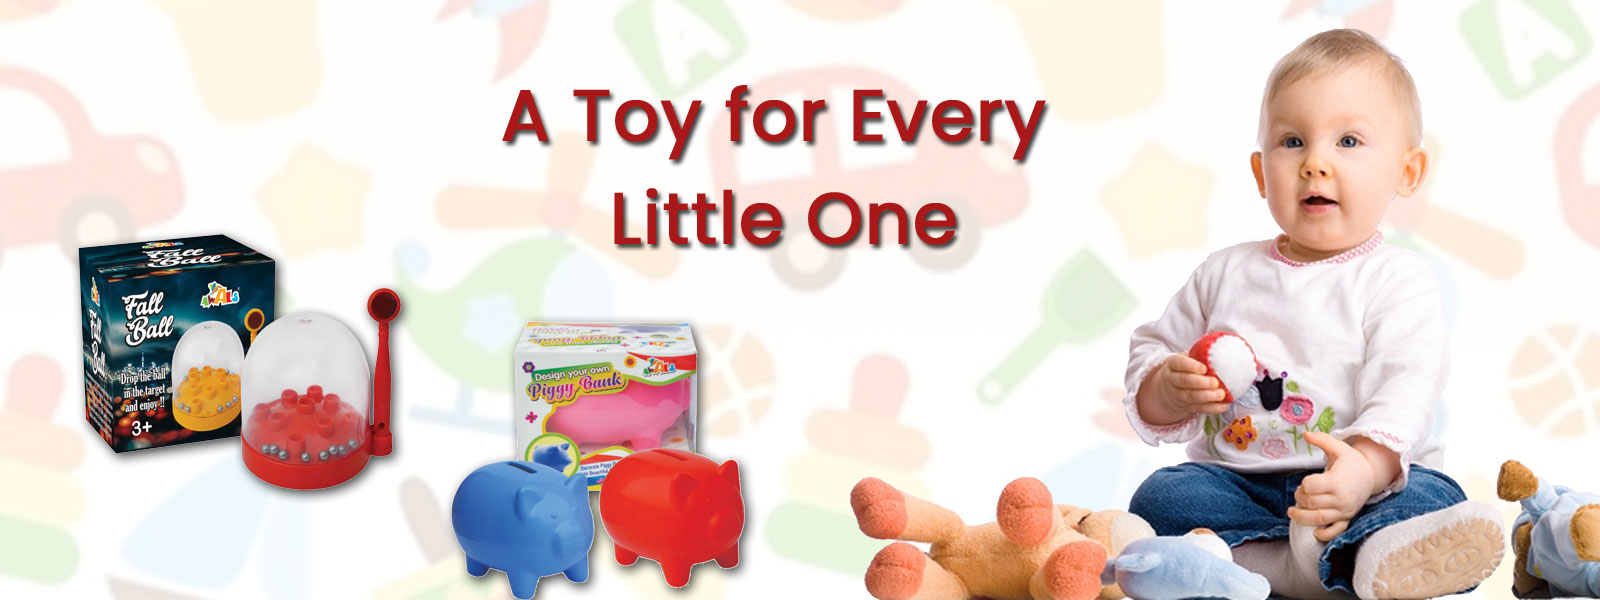 A Toy For Every Little One